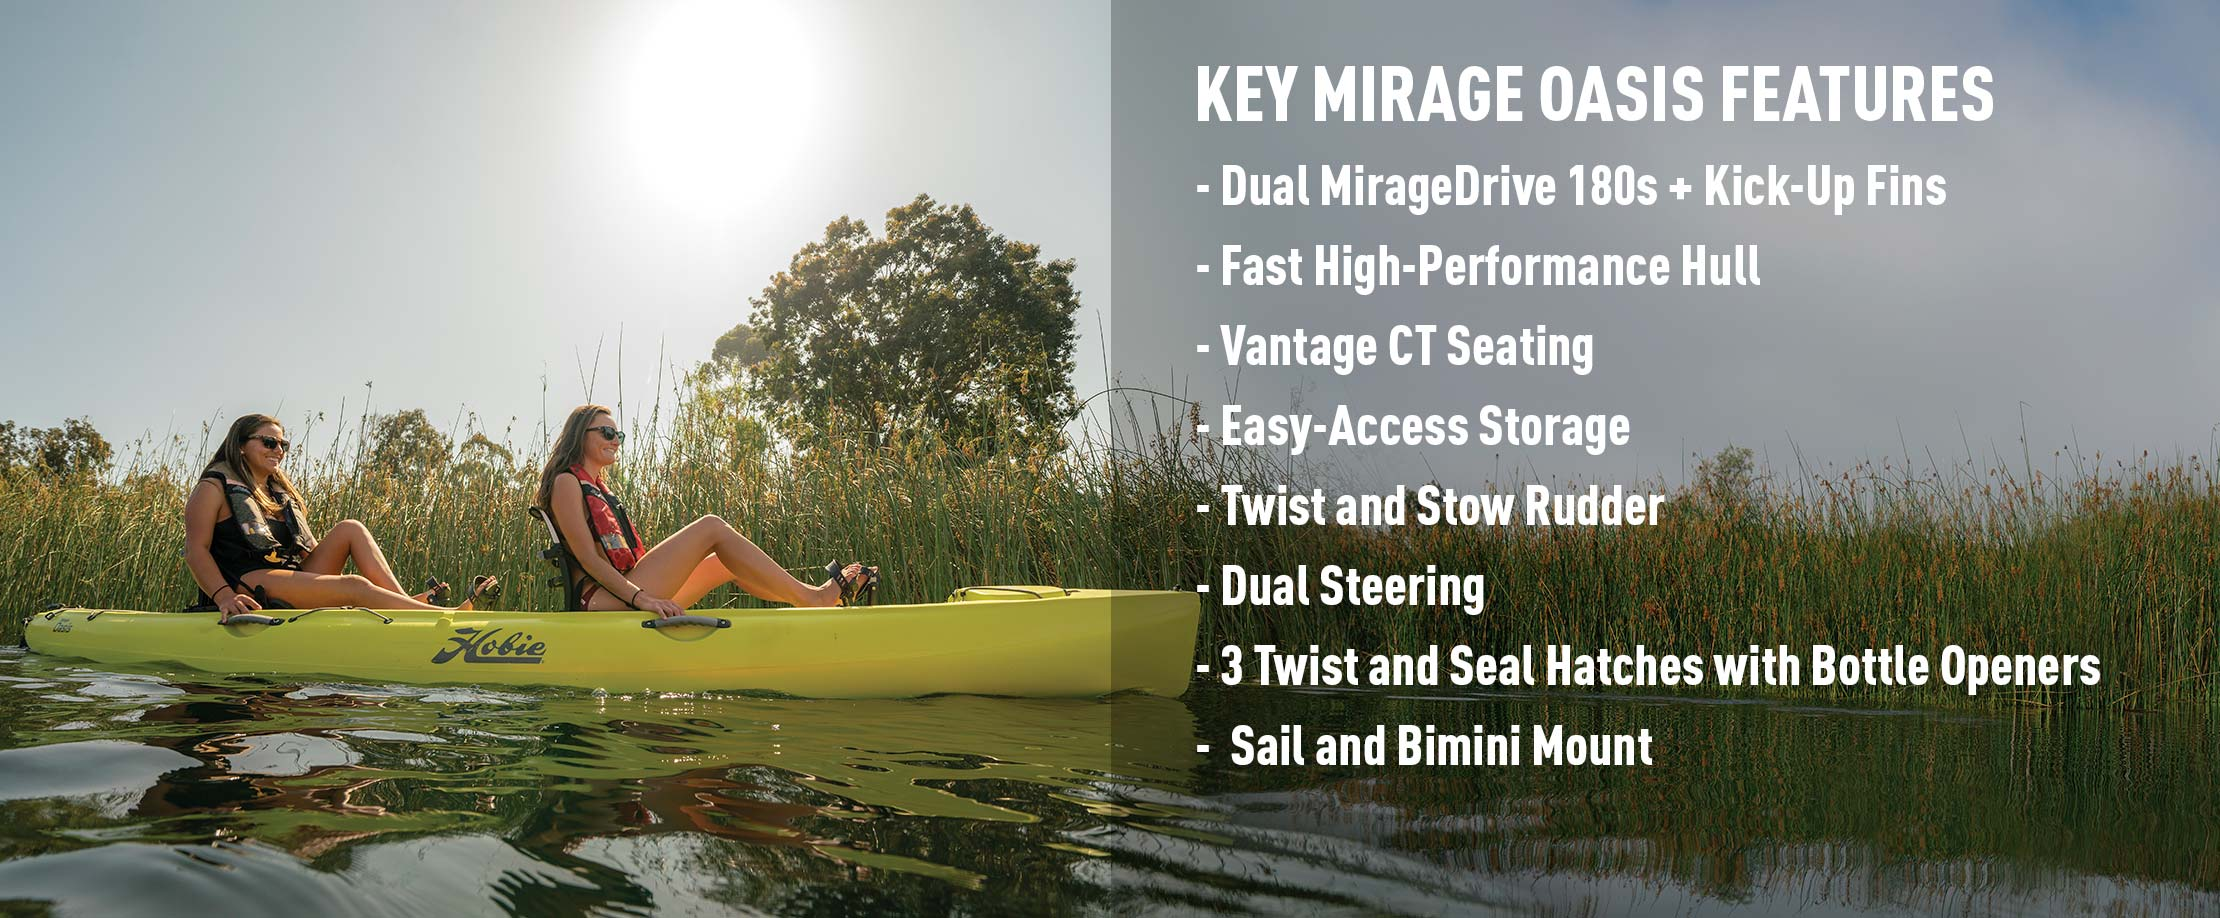 Mirage Oasis Features